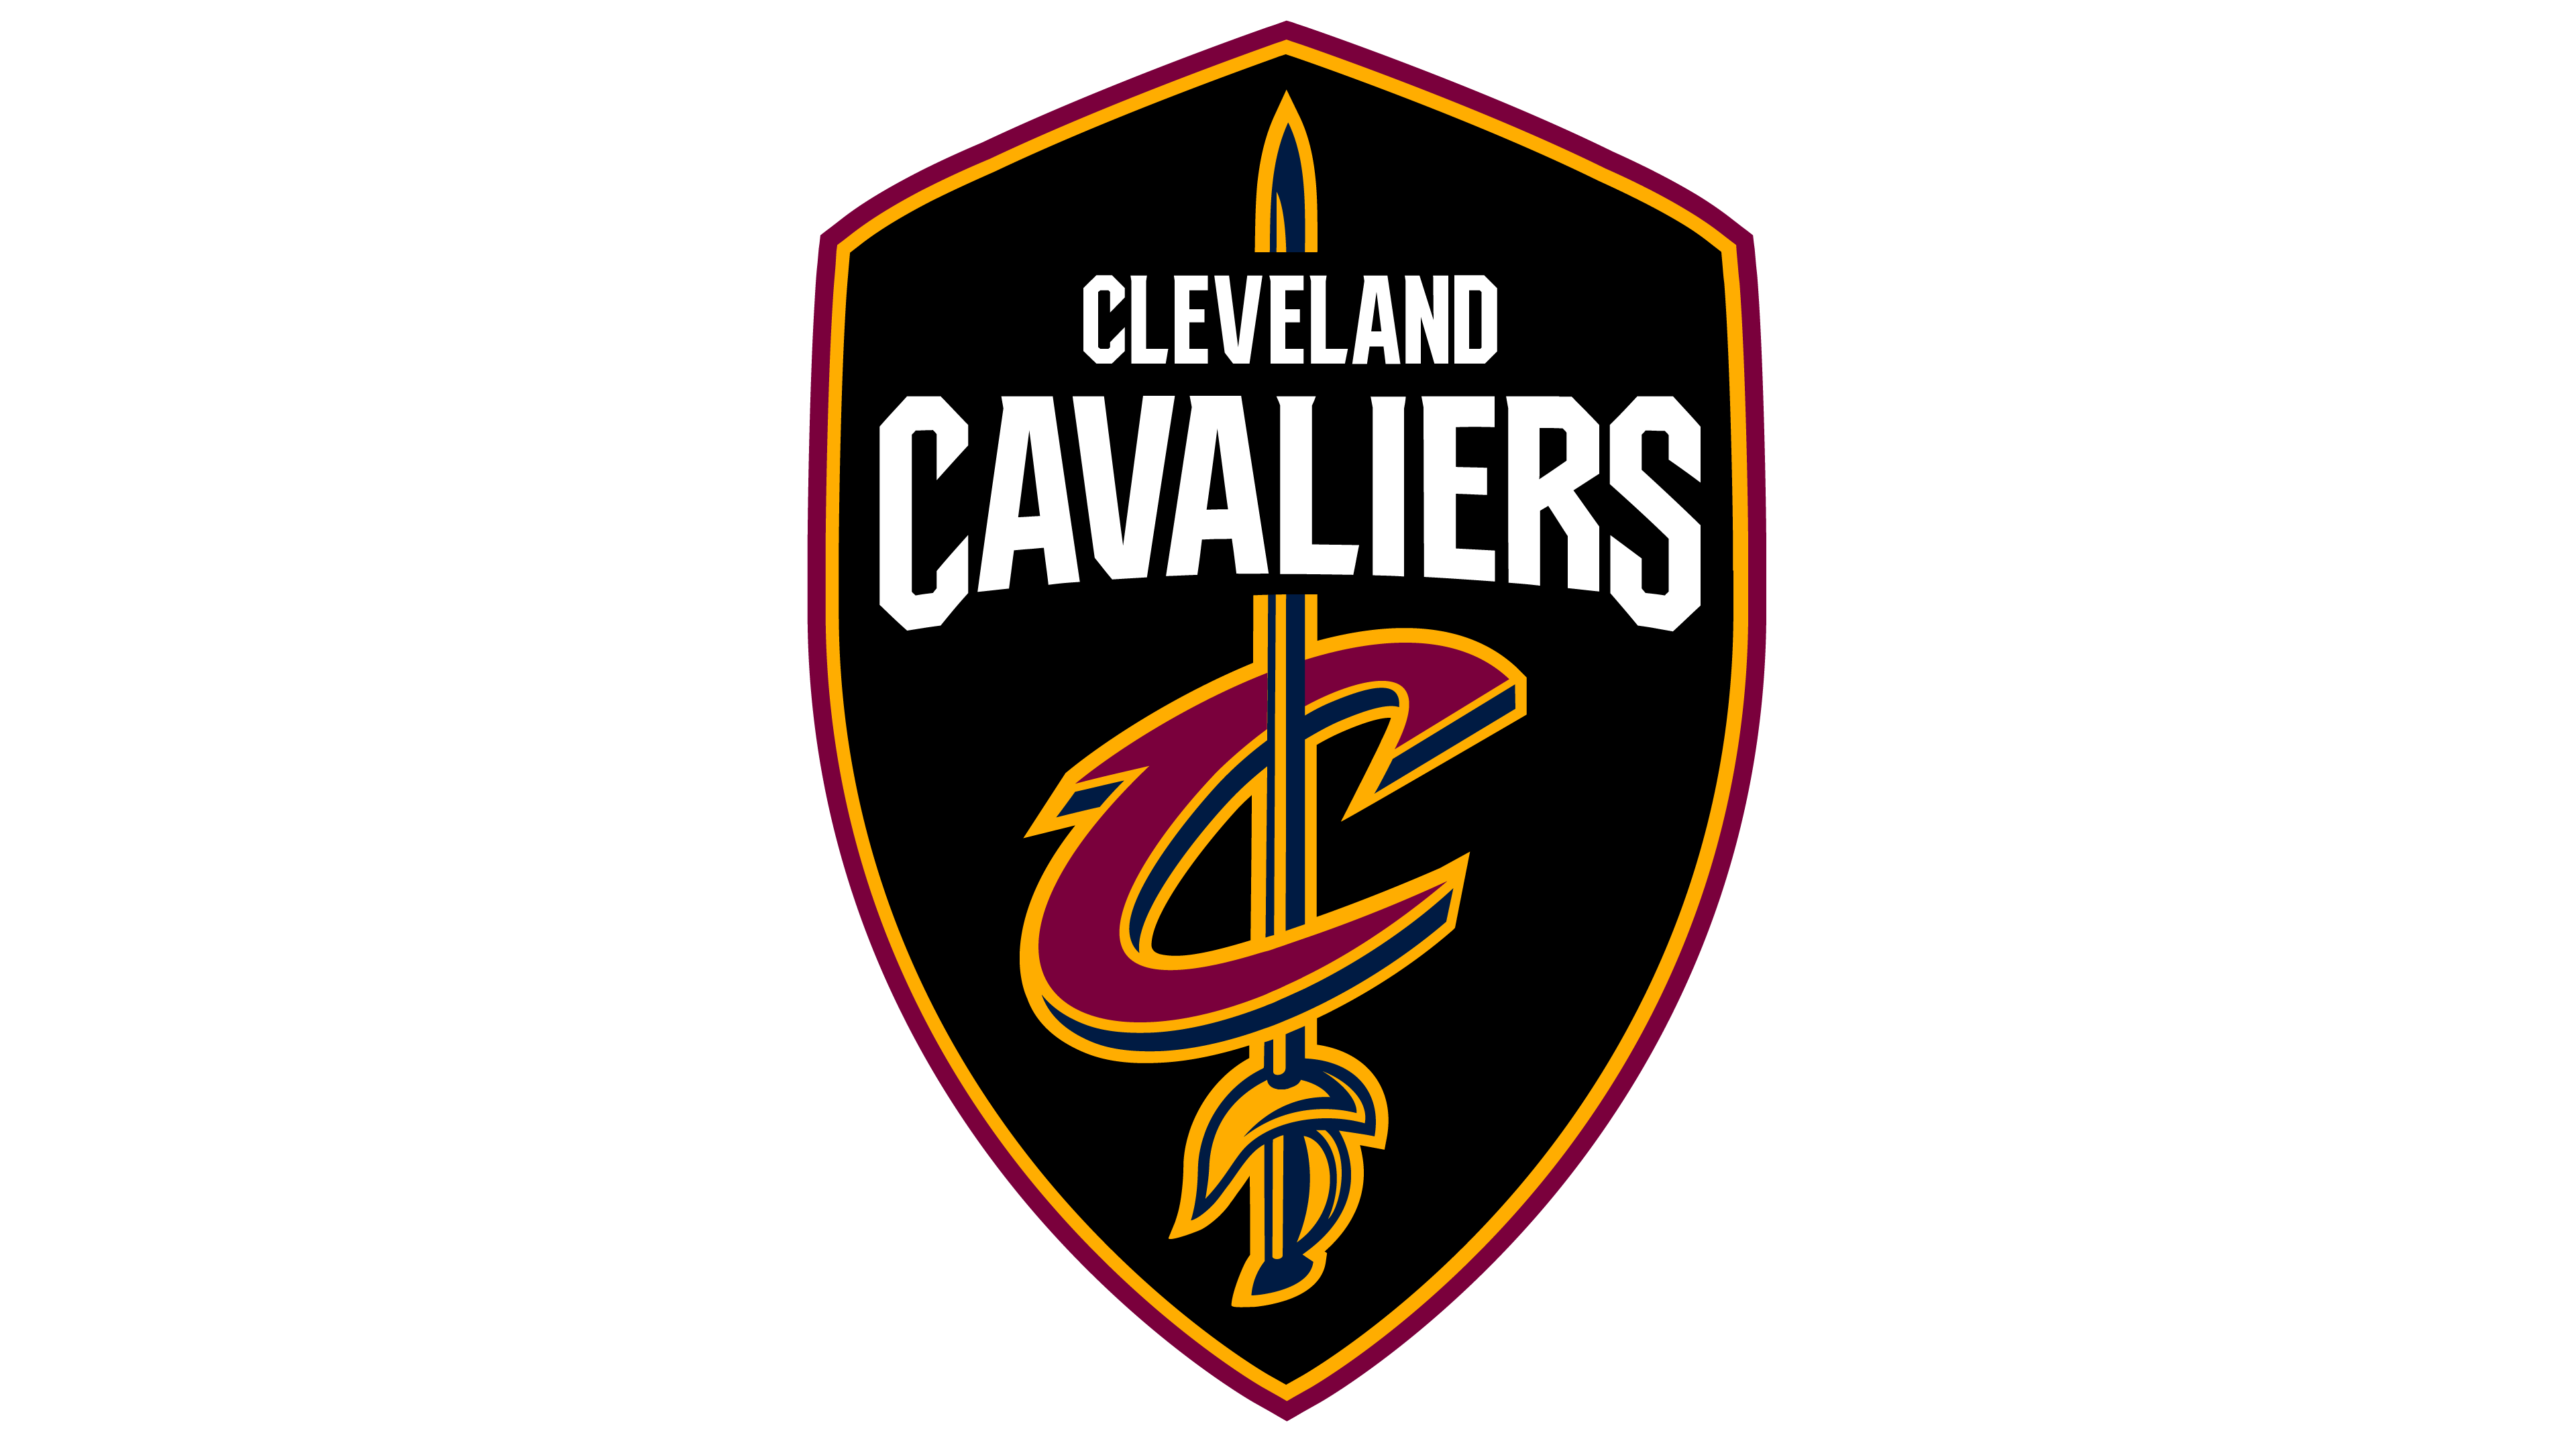 Cavs logo png. Cleveland cavaliers interesting history